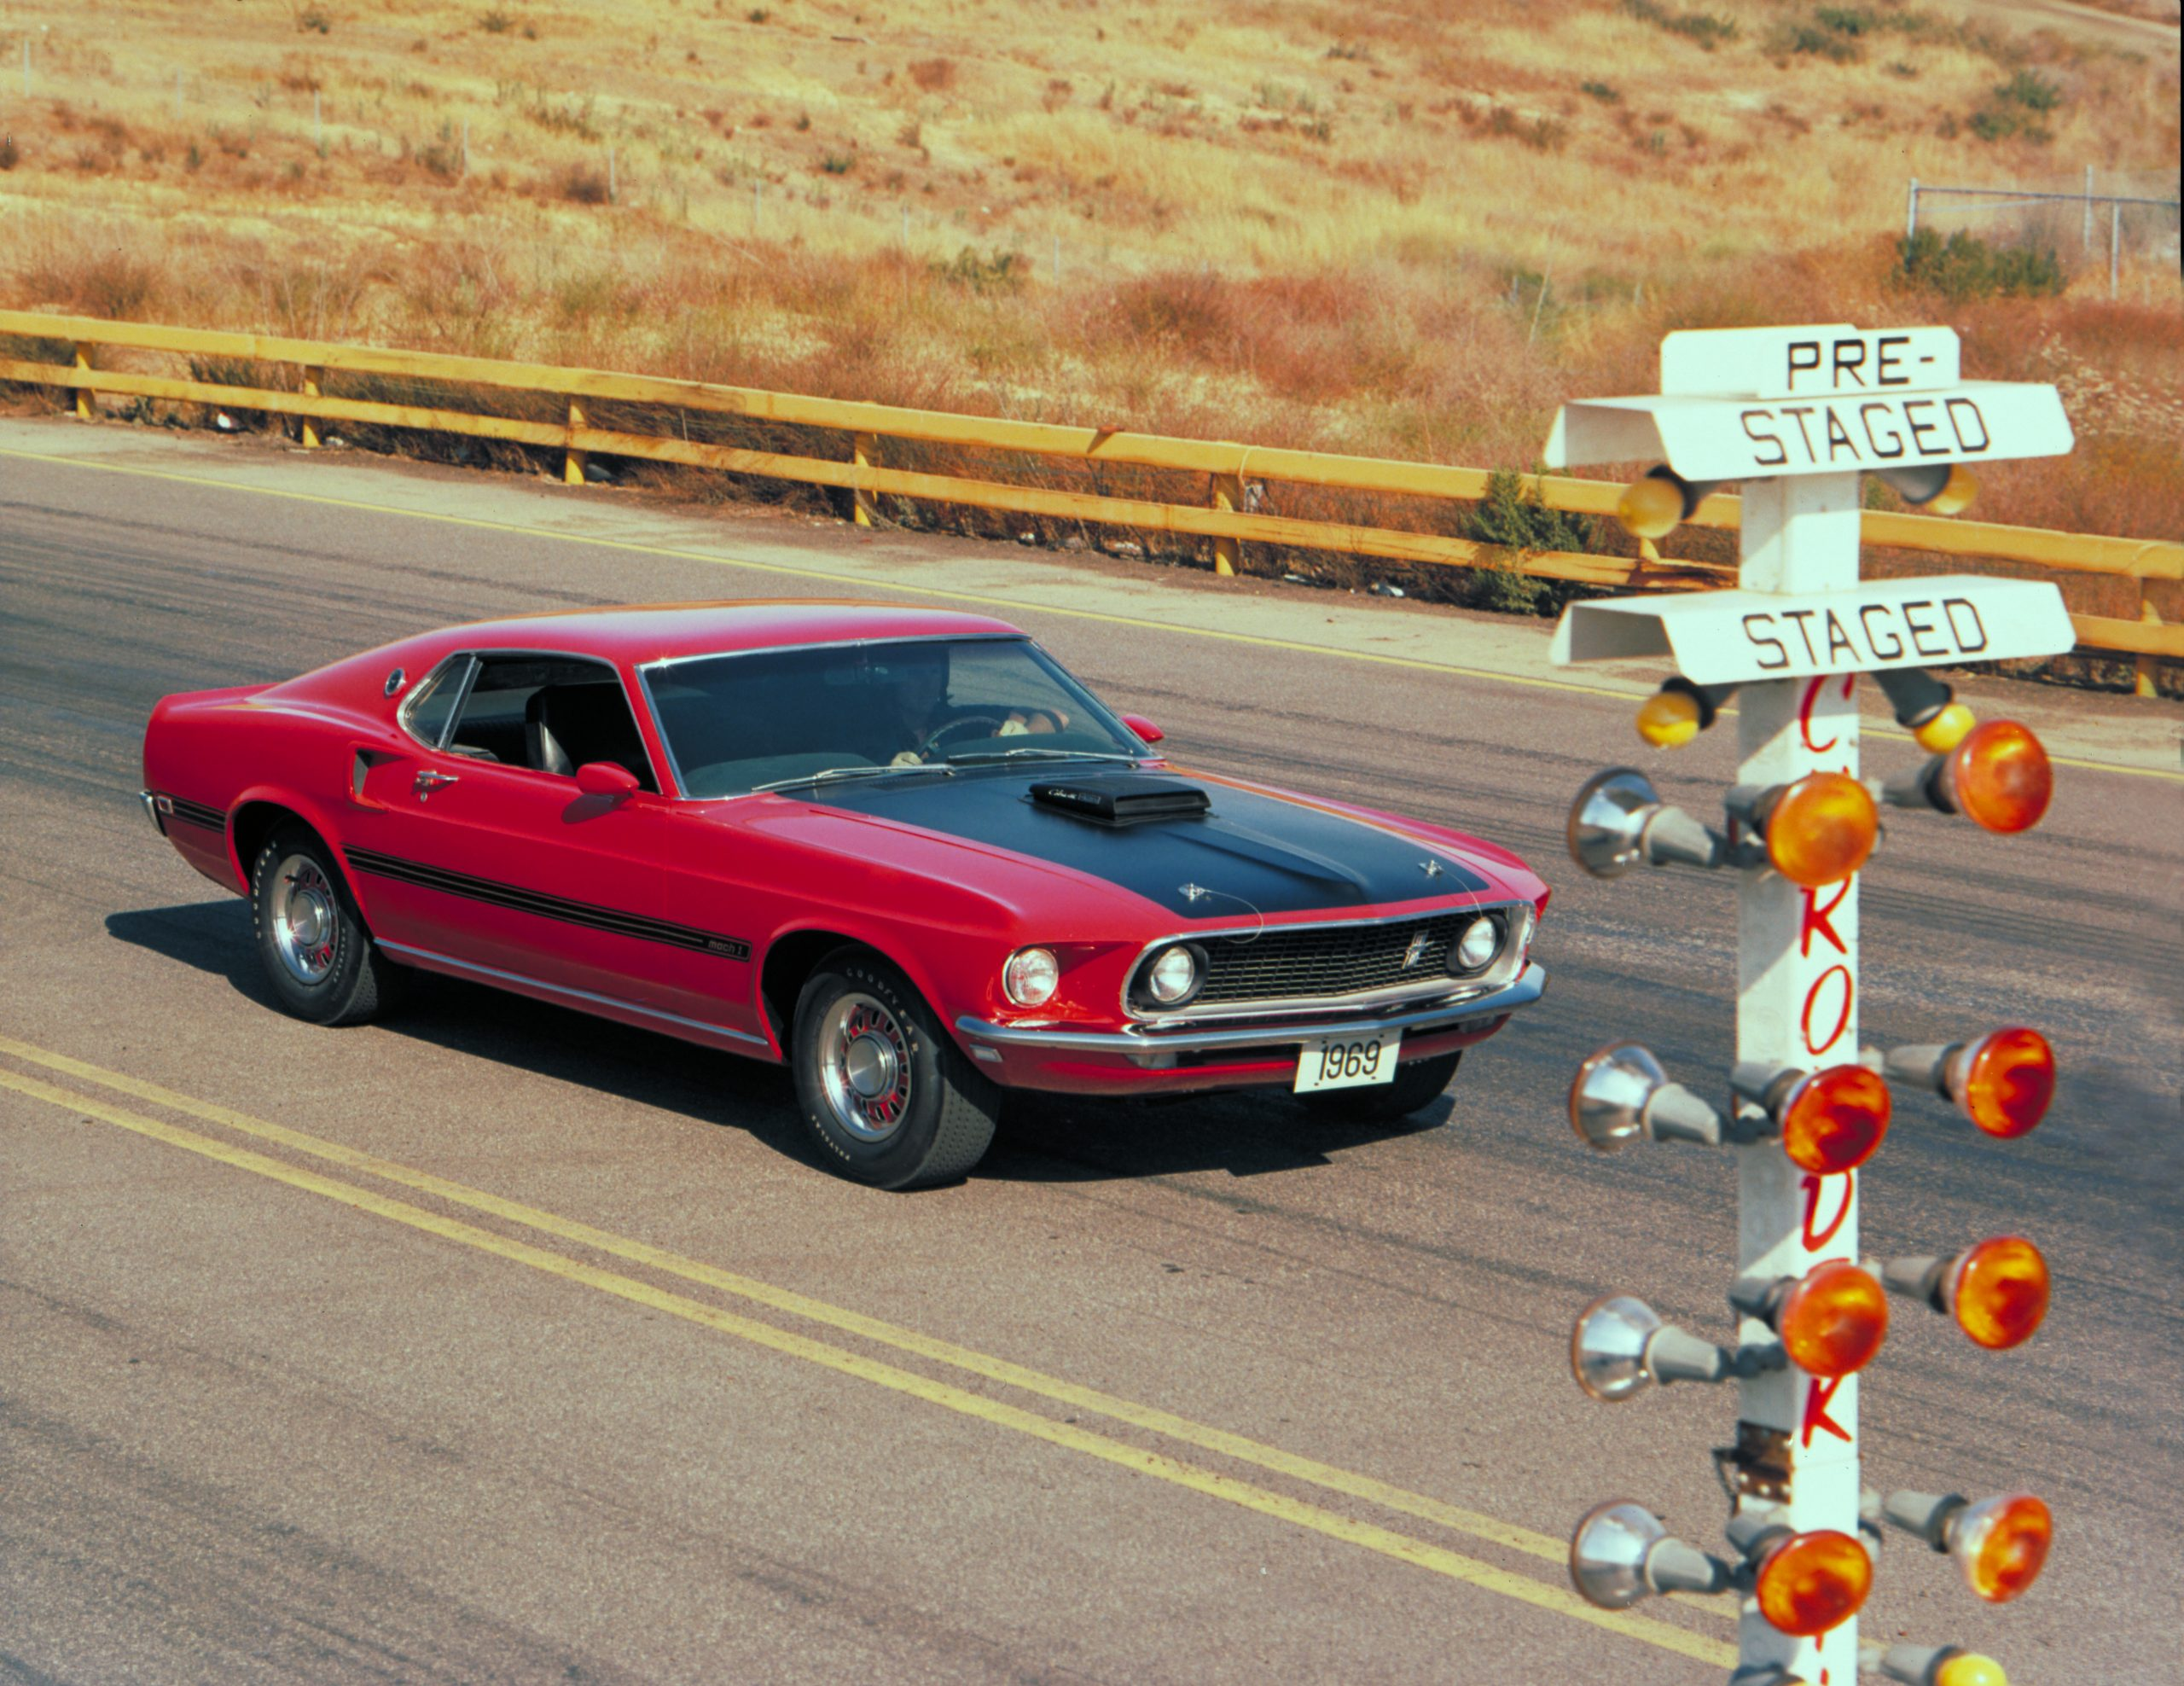 1969 Red Ford Mustang Mach 1 Fastback Front Three-Quarter At Track